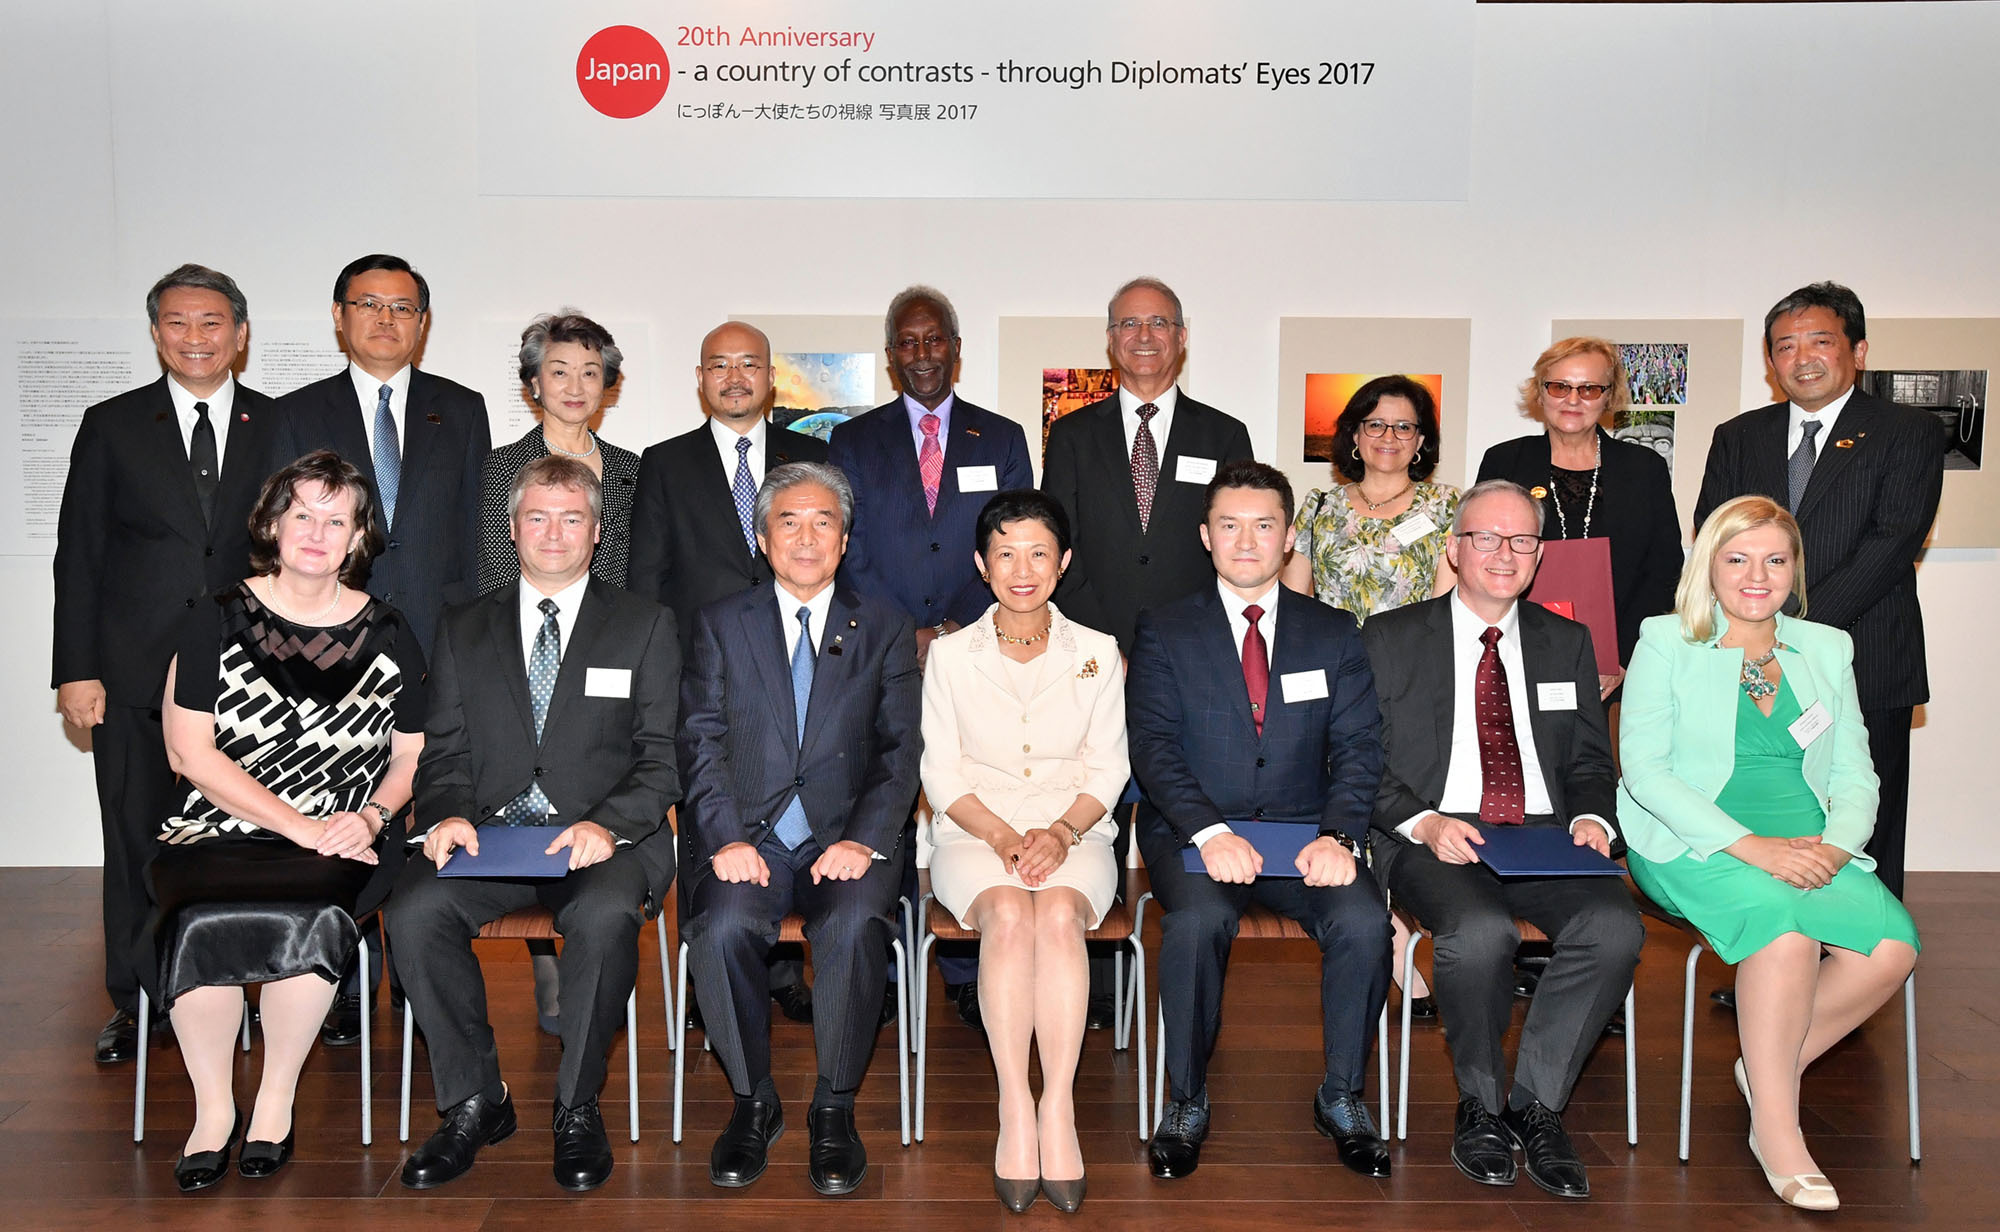 "Attendees at the ""Japan Through Diplomats' Eyes 2017"" opening event at Roppongi Hills on Oct. 3. Front row, left to right: Luxembourg Ambassador Beatrice Kirsch, Executive Committee chair; Grand prize winner Attila Erdos; Hirofumi Nakasone, head of the jury; Honorary President Princess Takamado; Princess Takamado Memorial prize winner Andrey Kuzhabekov; New Zealand Ambassador Stephen Payton, winner of the Ambassador Prize; and Macedonian Ambassador Andrijana Cvetkovik, who received a special mention from the jury. Behind them are other special-mention winners and committee members. 